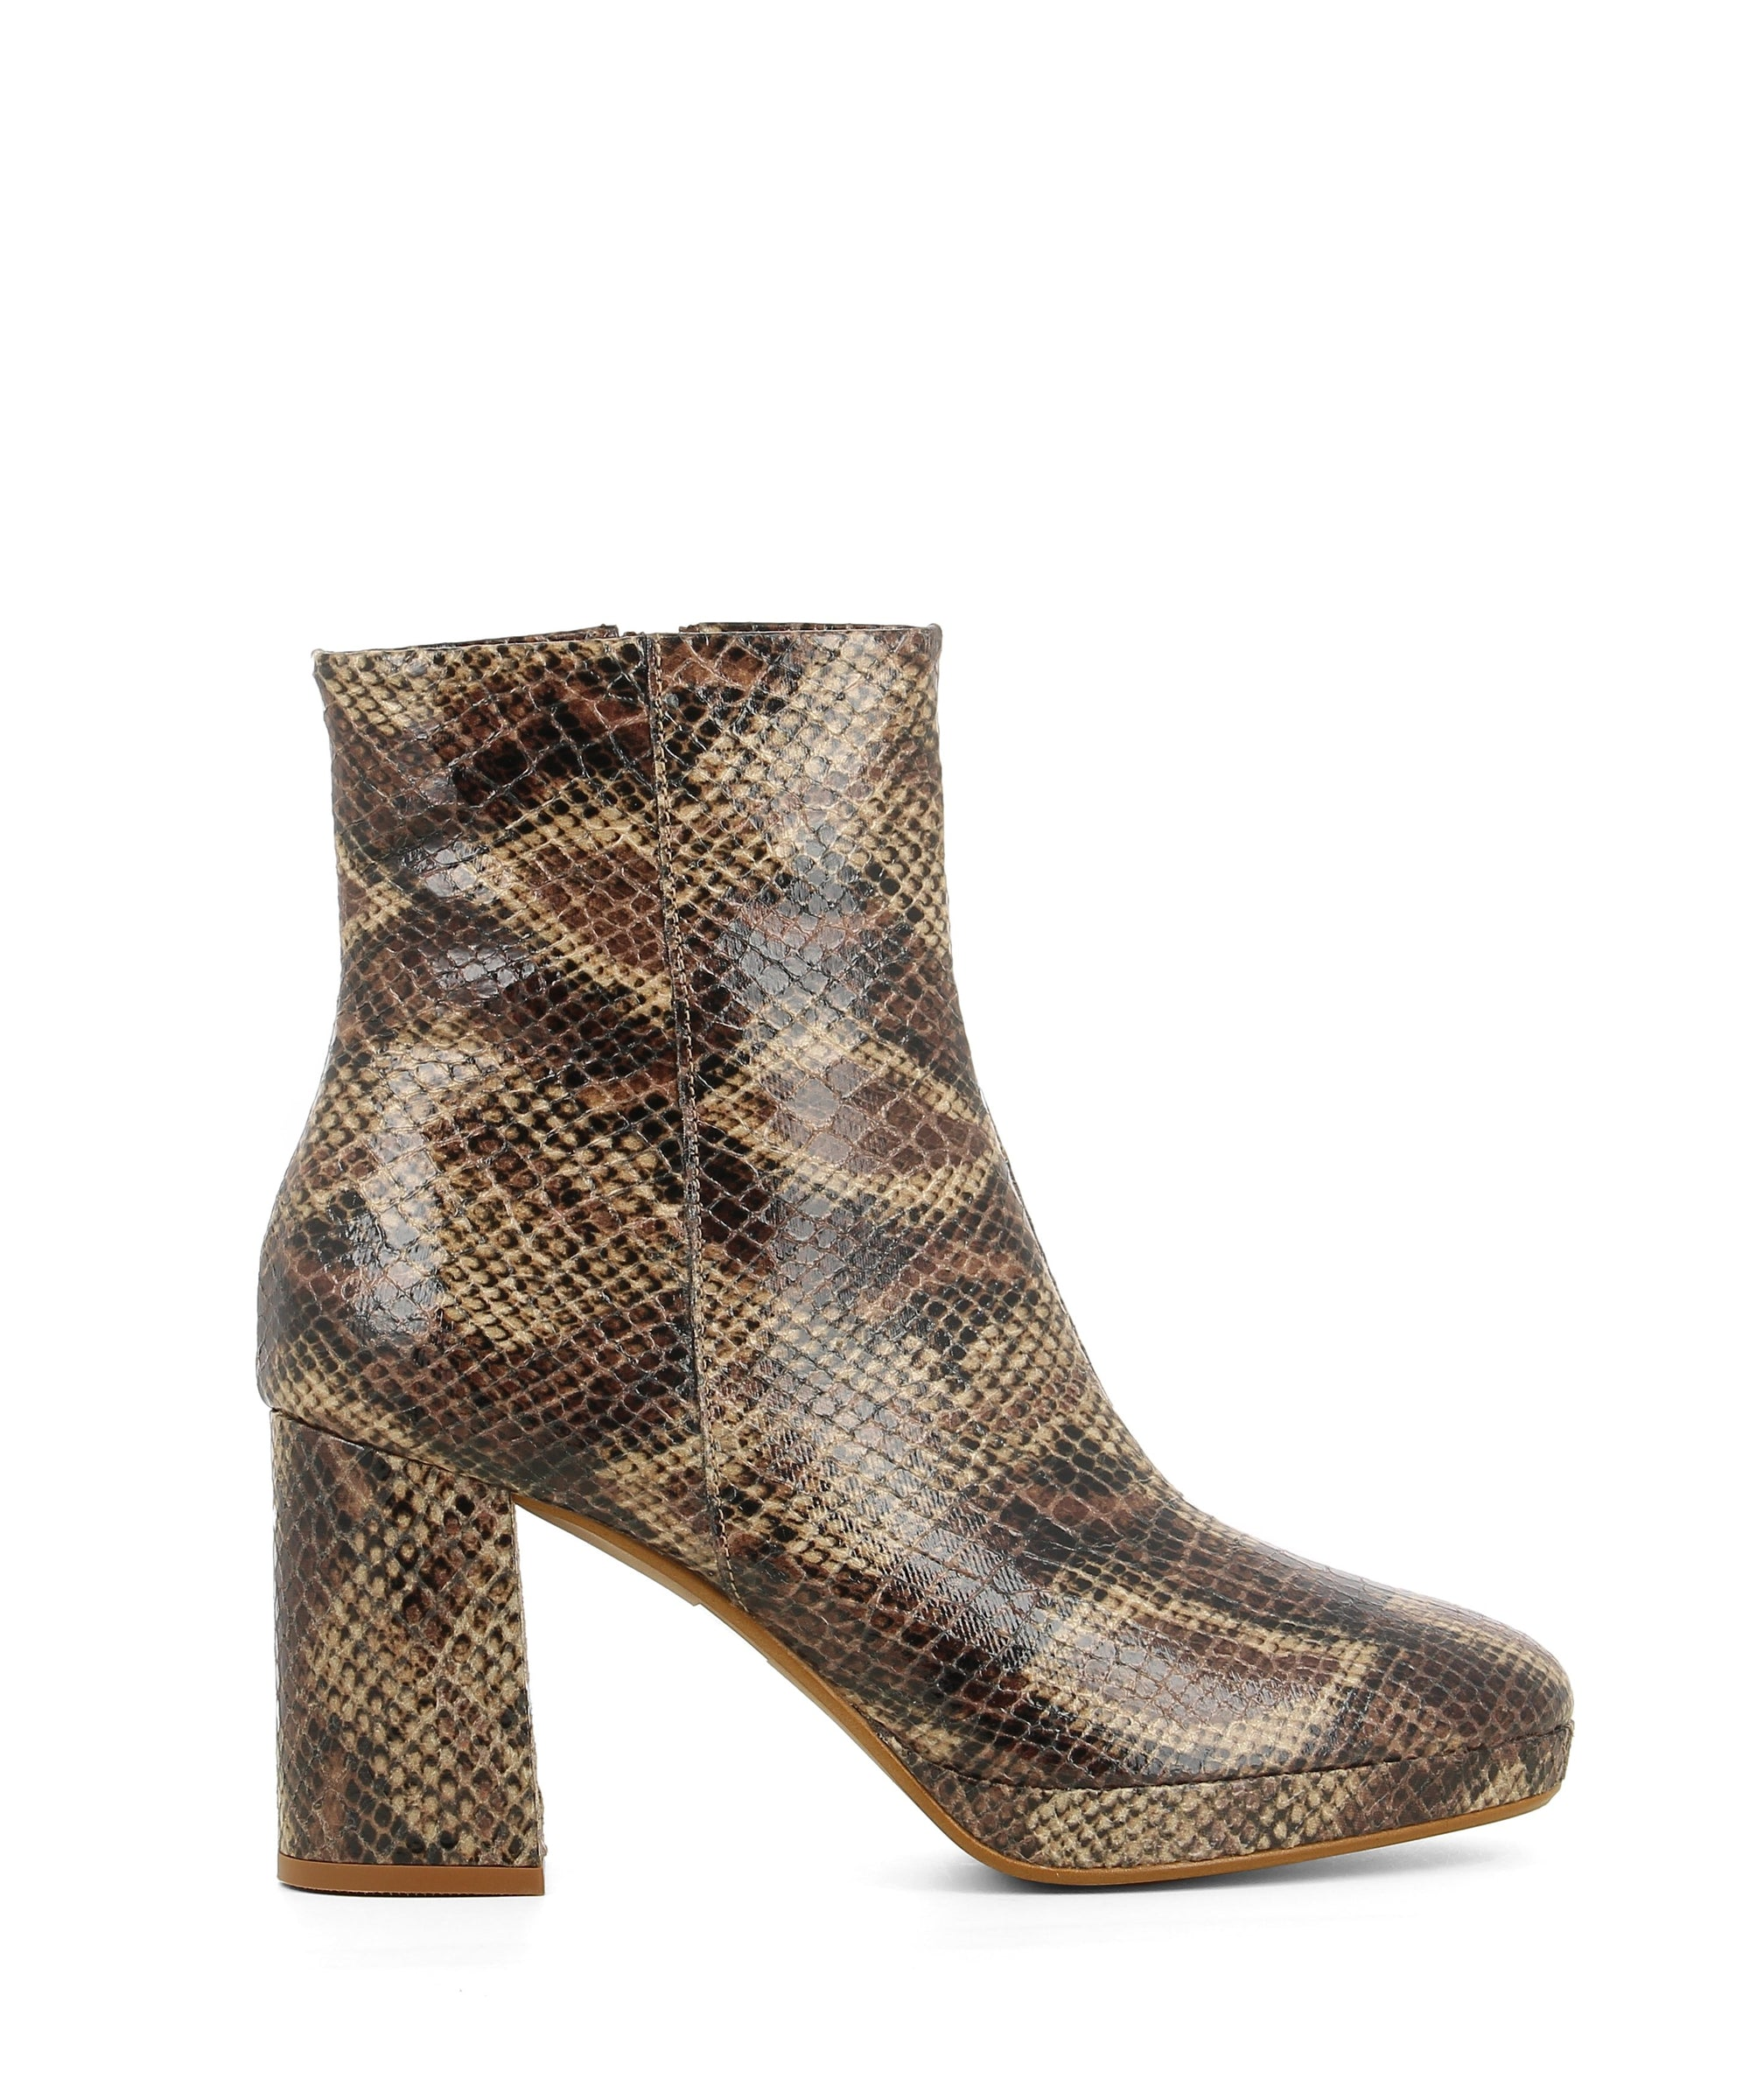 A taupe snake effect platform ankle boot by Christian Di Riccio. The '4916' features a side zip closure, a block heel and a round toe.